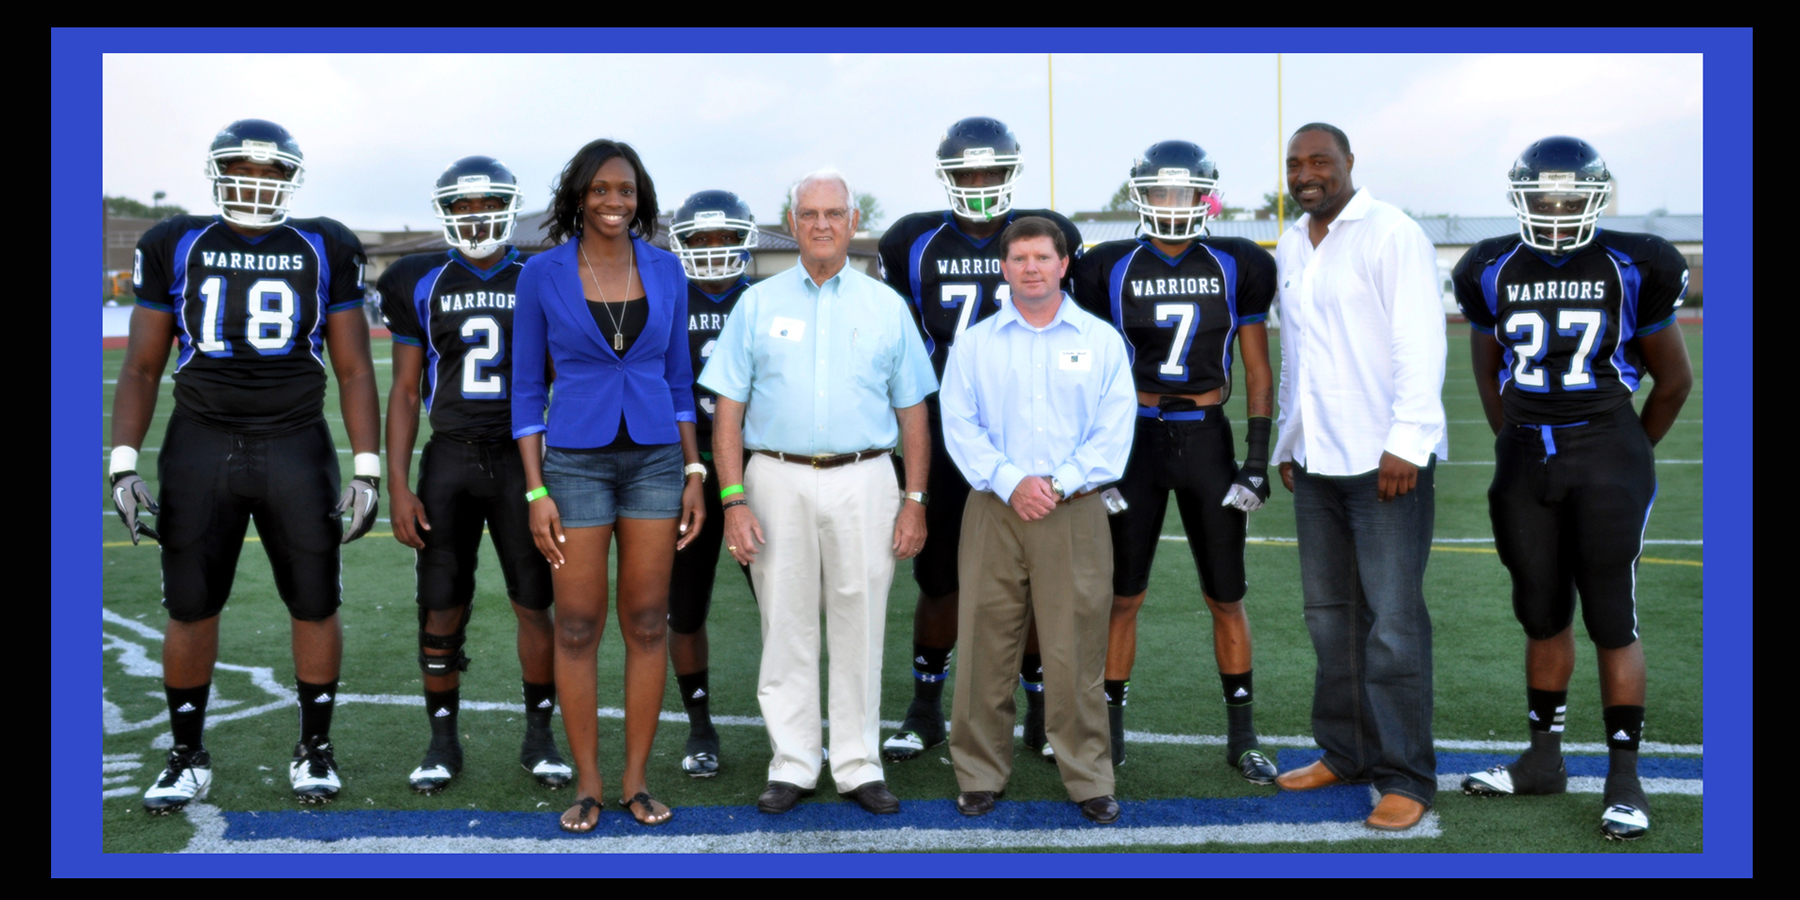 2012 athletic hall of fame members